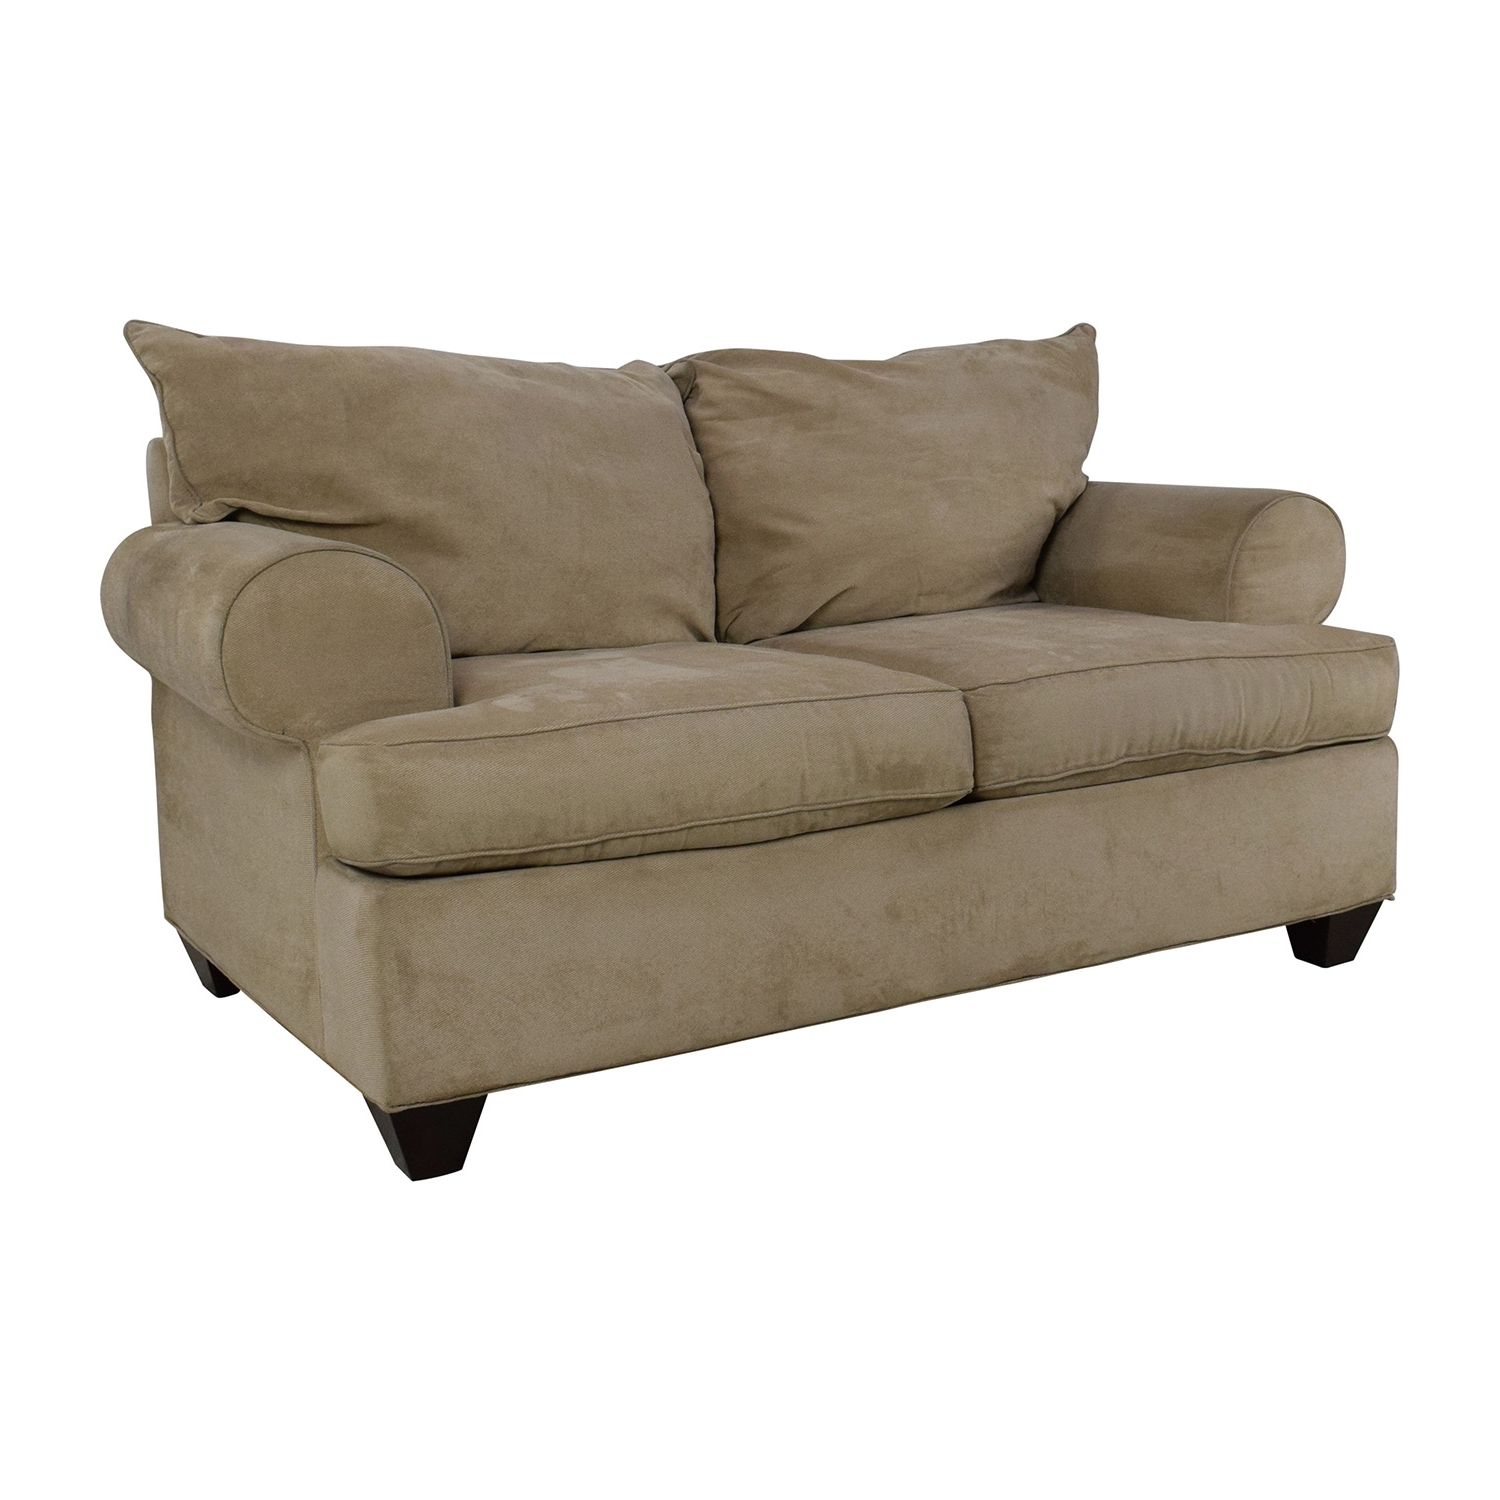 [%59% Off – Raymour And Flanigan Raymour & Flanigan Vegas Microfiber Within Recent Sectional Sofas At Raymour And Flanigan|Sectional Sofas At Raymour And Flanigan Regarding Popular 59% Off – Raymour And Flanigan Raymour & Flanigan Vegas Microfiber|Favorite Sectional Sofas At Raymour And Flanigan With 59% Off – Raymour And Flanigan Raymour & Flanigan Vegas Microfiber|Most Recent 59% Off – Raymour And Flanigan Raymour & Flanigan Vegas Microfiber Inside Sectional Sofas At Raymour And Flanigan%] (View 6 of 15)